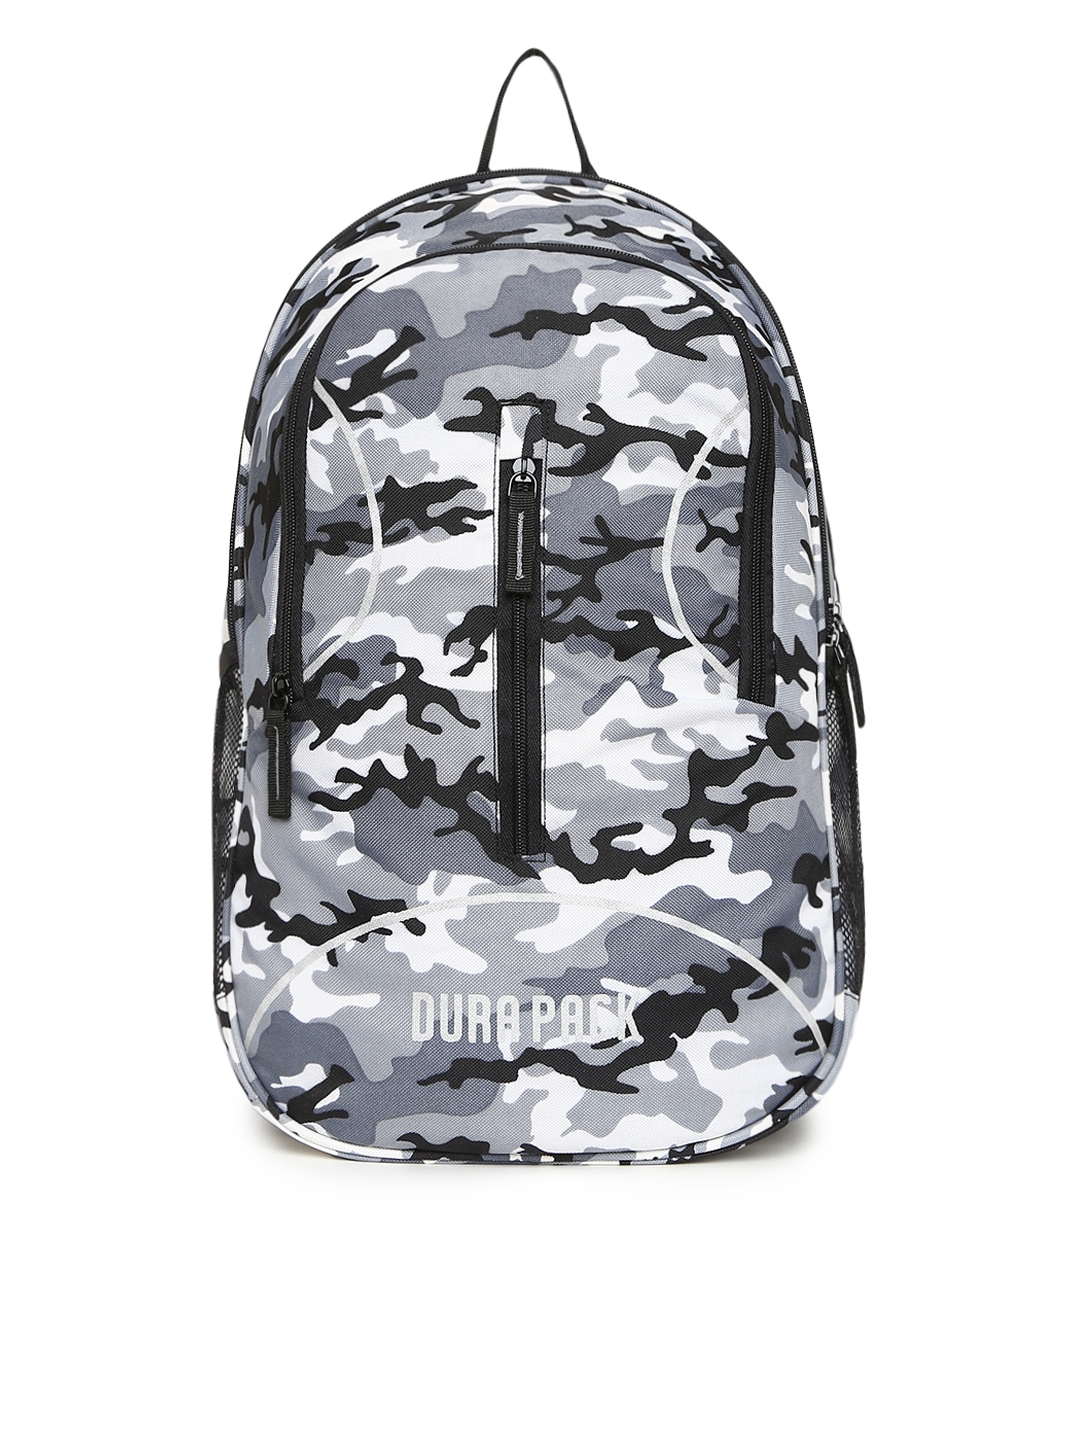 Durapack Unisex Grey   White Camouflage Print 15 Inch Laptop Backpack